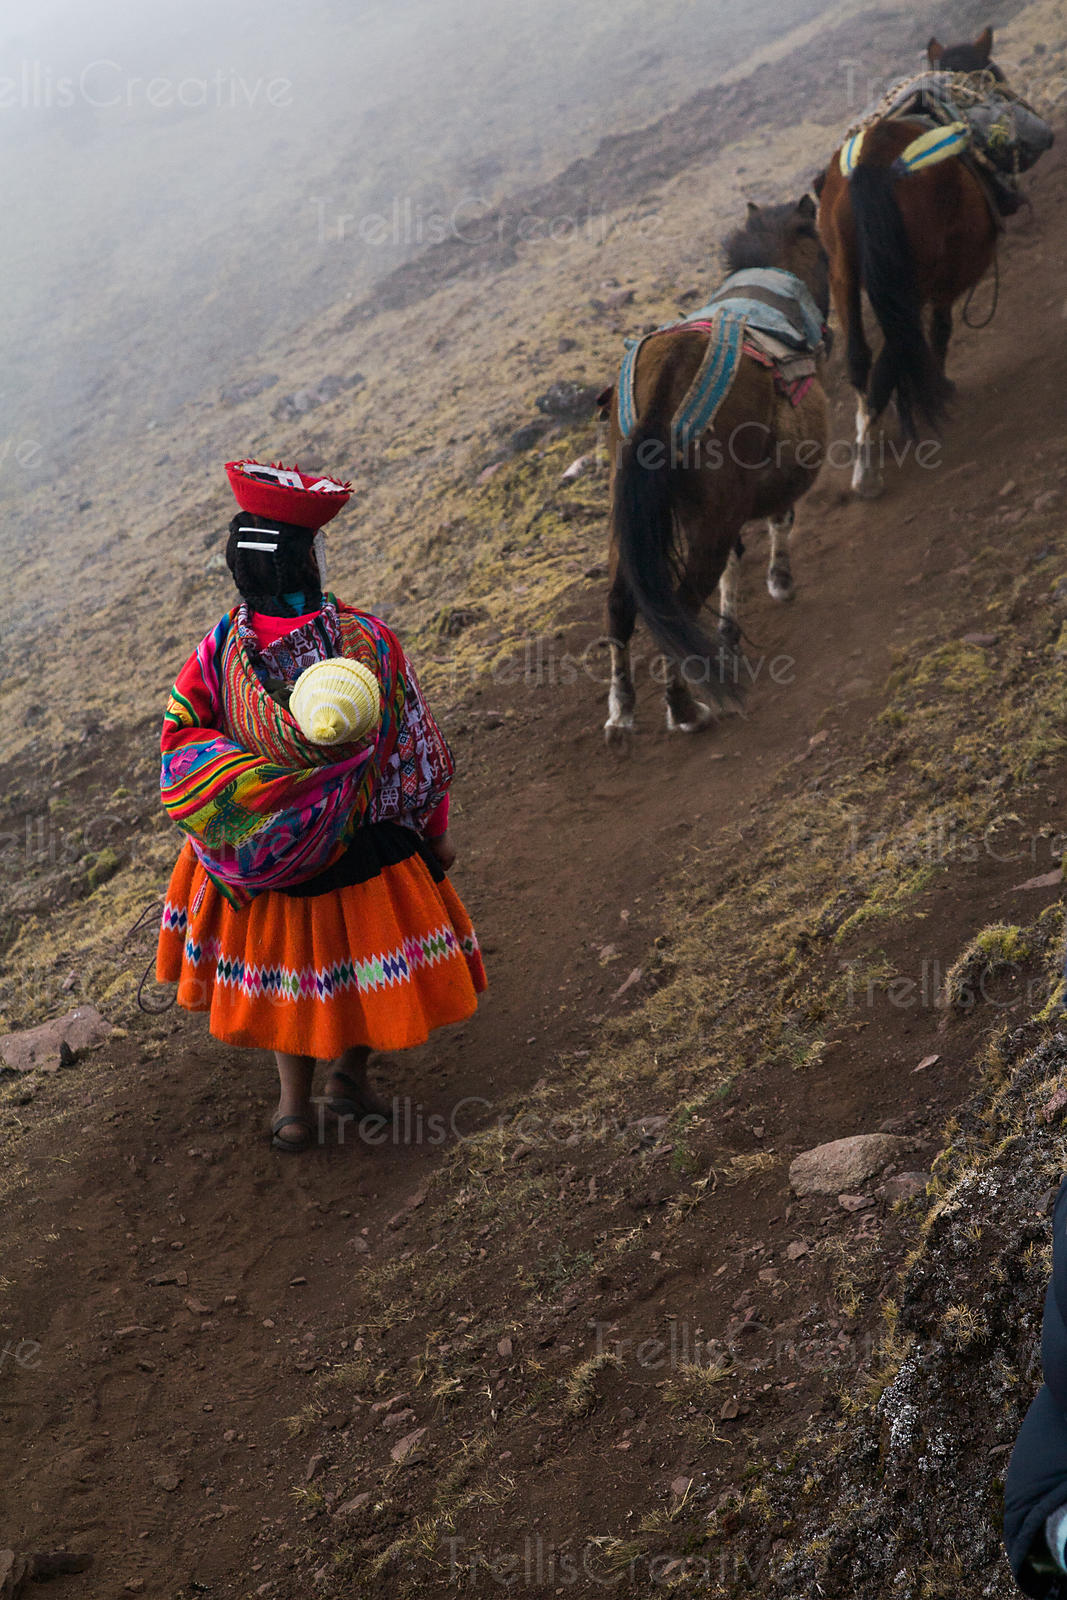 A young Andean woman and her baby, Lares Trek, Andes Mountains, Peru